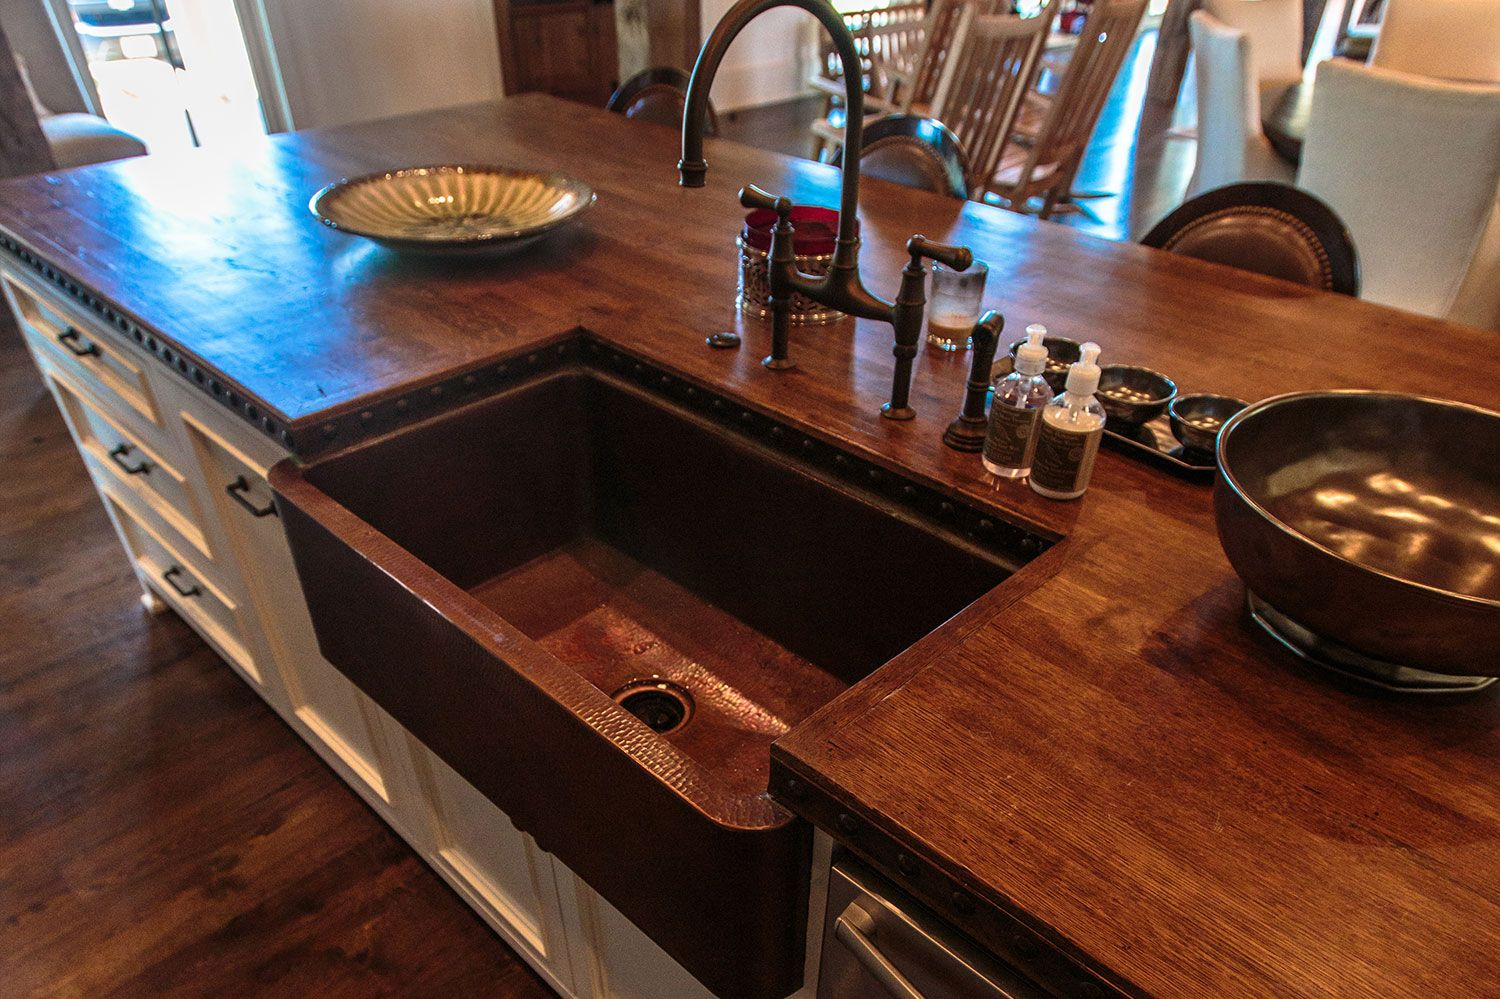 Custom Reclaimed Wood Countertop Kitchen Island With Copper Sink. Pike Road  Millwork.